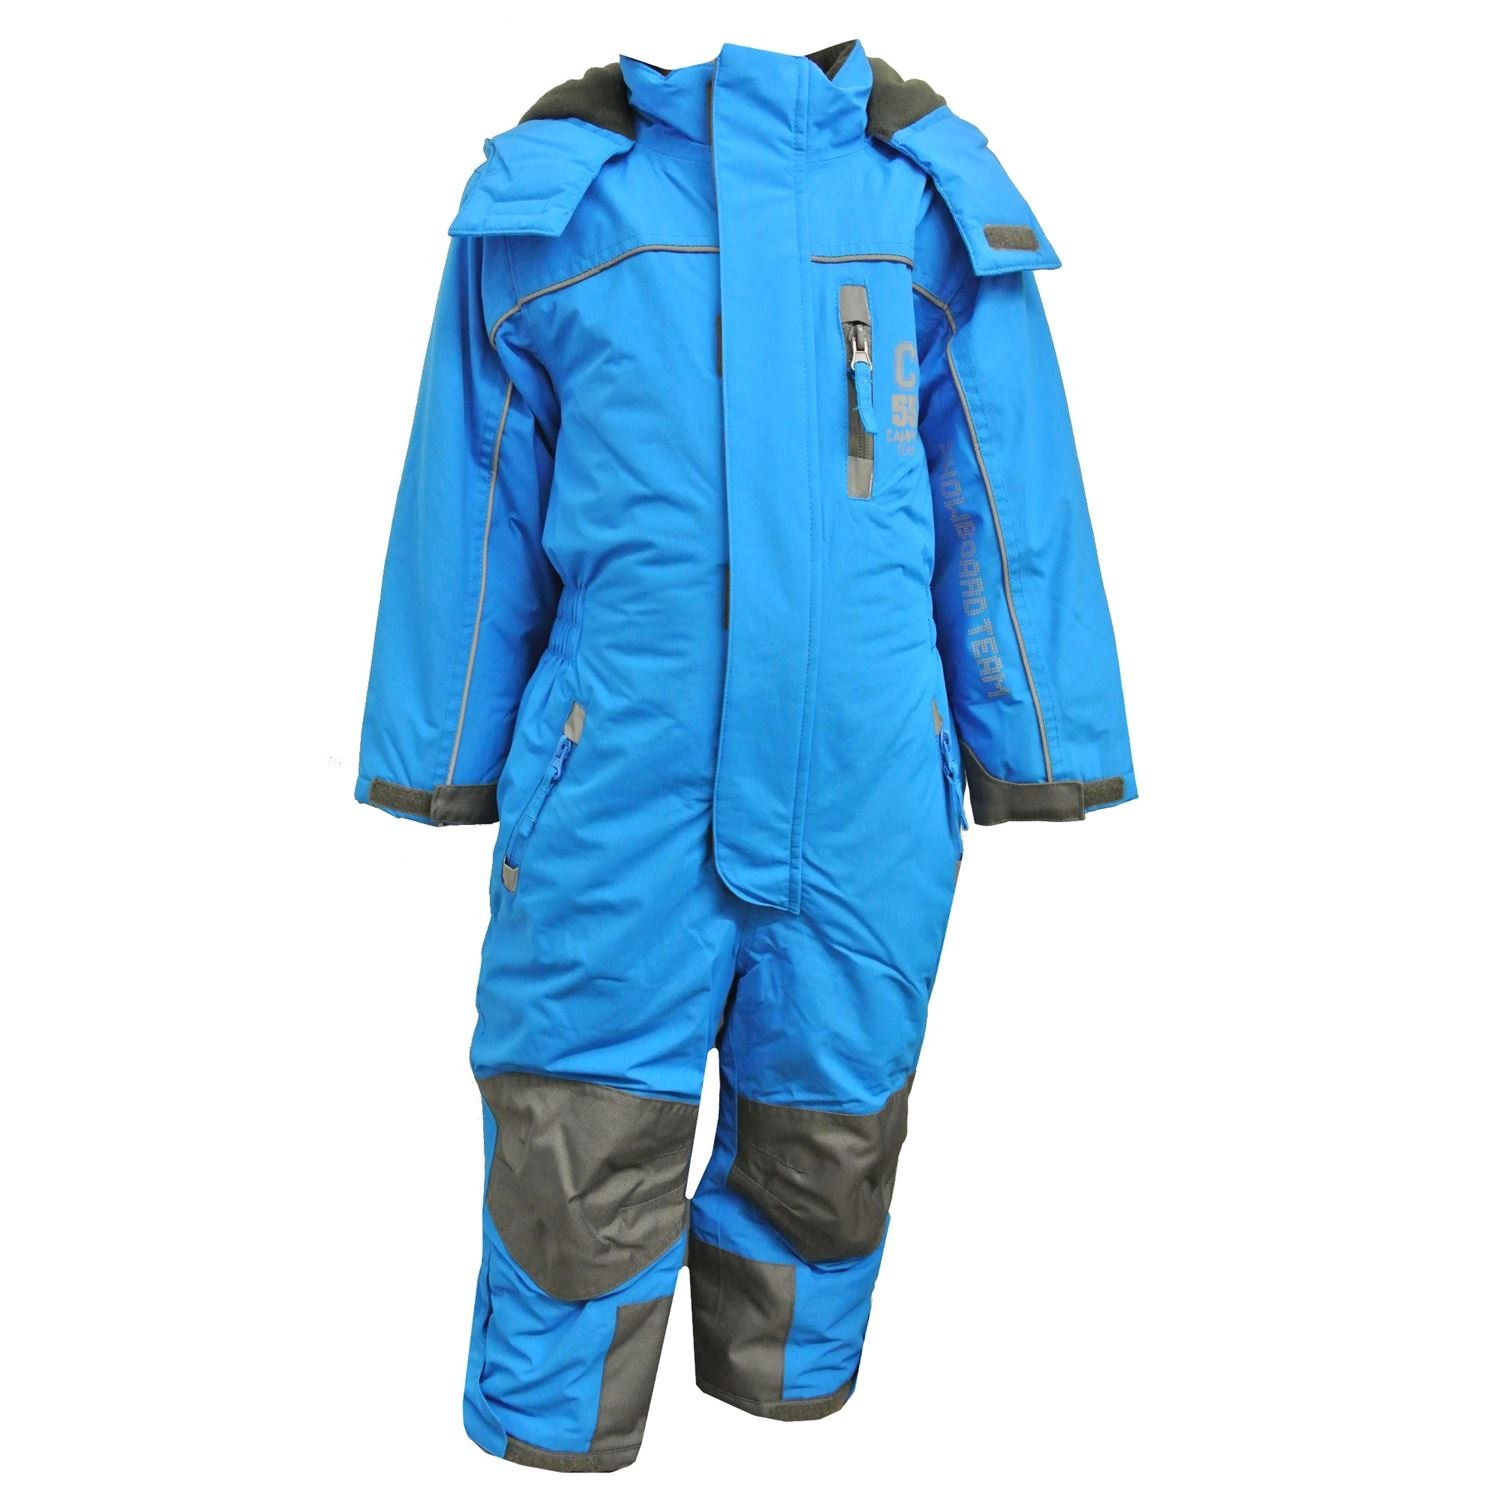 Outburst - Boy Snowoverall Jumpsuit 10.000 mm water column, blue - 3711900